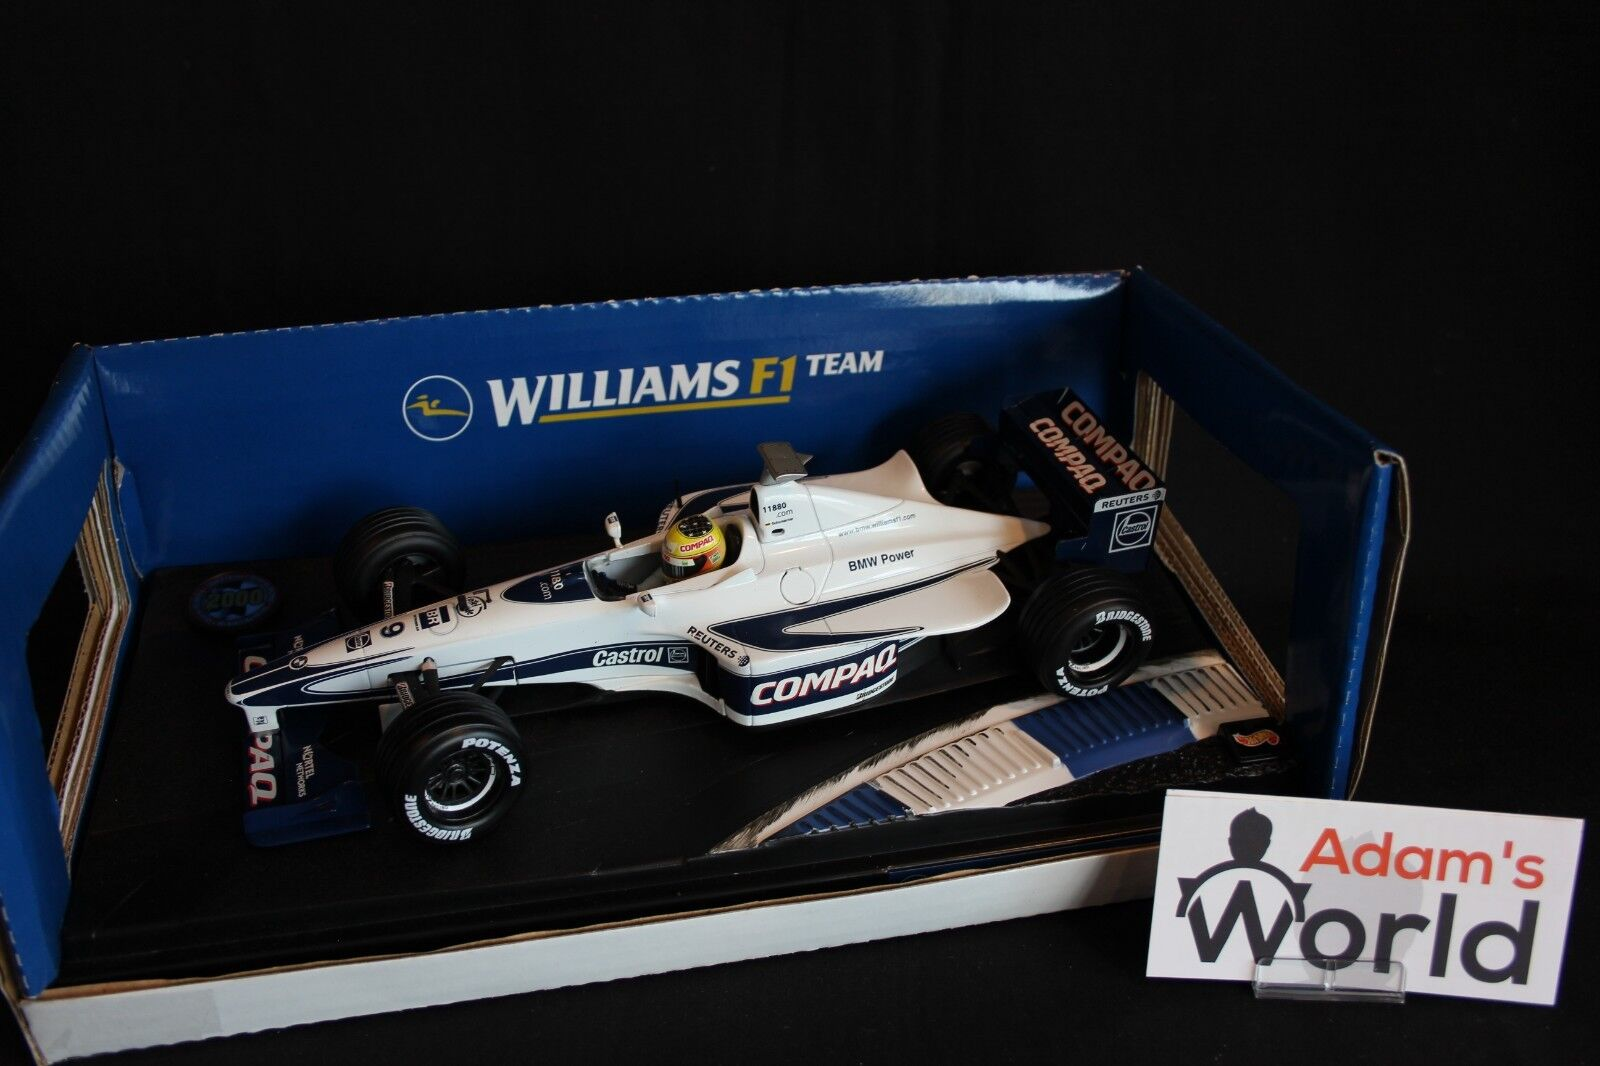 Hot Wheels Williams BMW Launch car 2000 1 18 18 18 Ralf Schumacher (GER) ae44b4